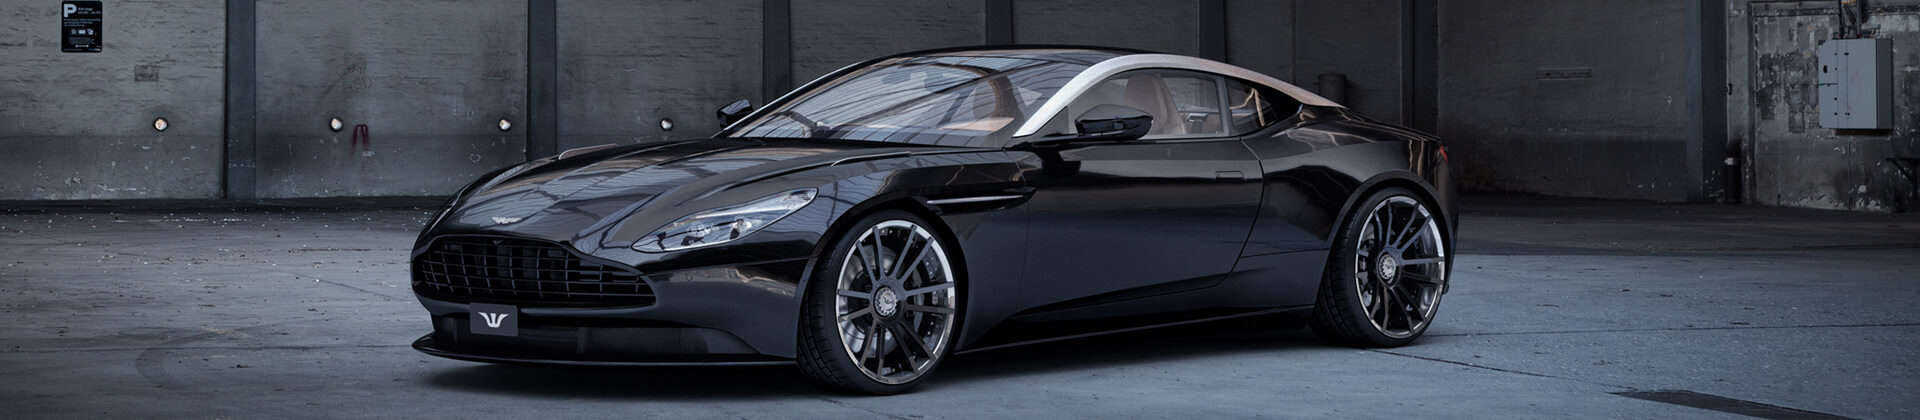 Aston Martin DB11 Wheels